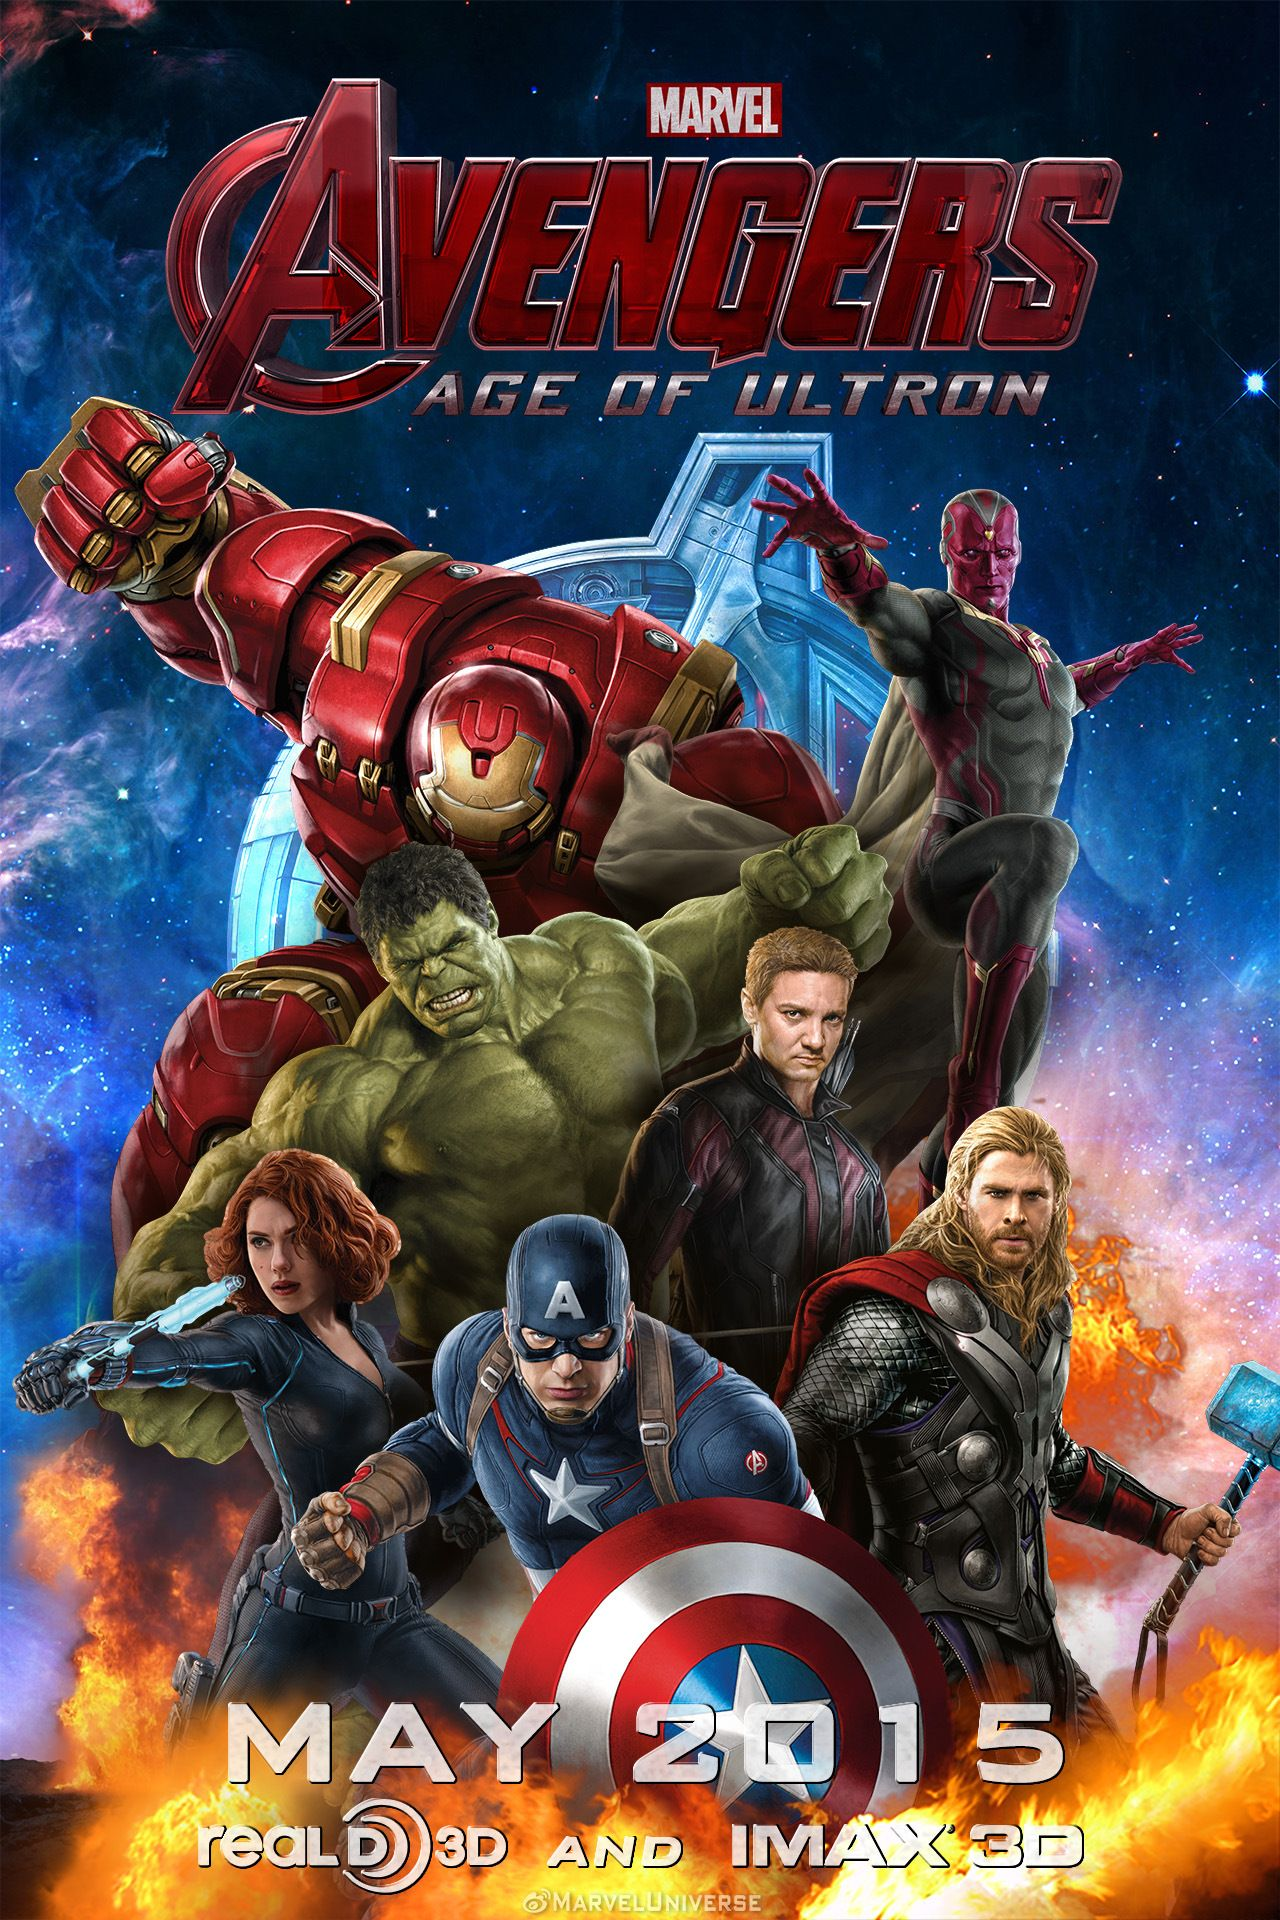 Avengers Fan Art Avengers 2 Age Of Ultron Hd Image For Android 5 The 5 Står åward Of Aw Yea Avengers Movies Avengers Comics Marvel Characters